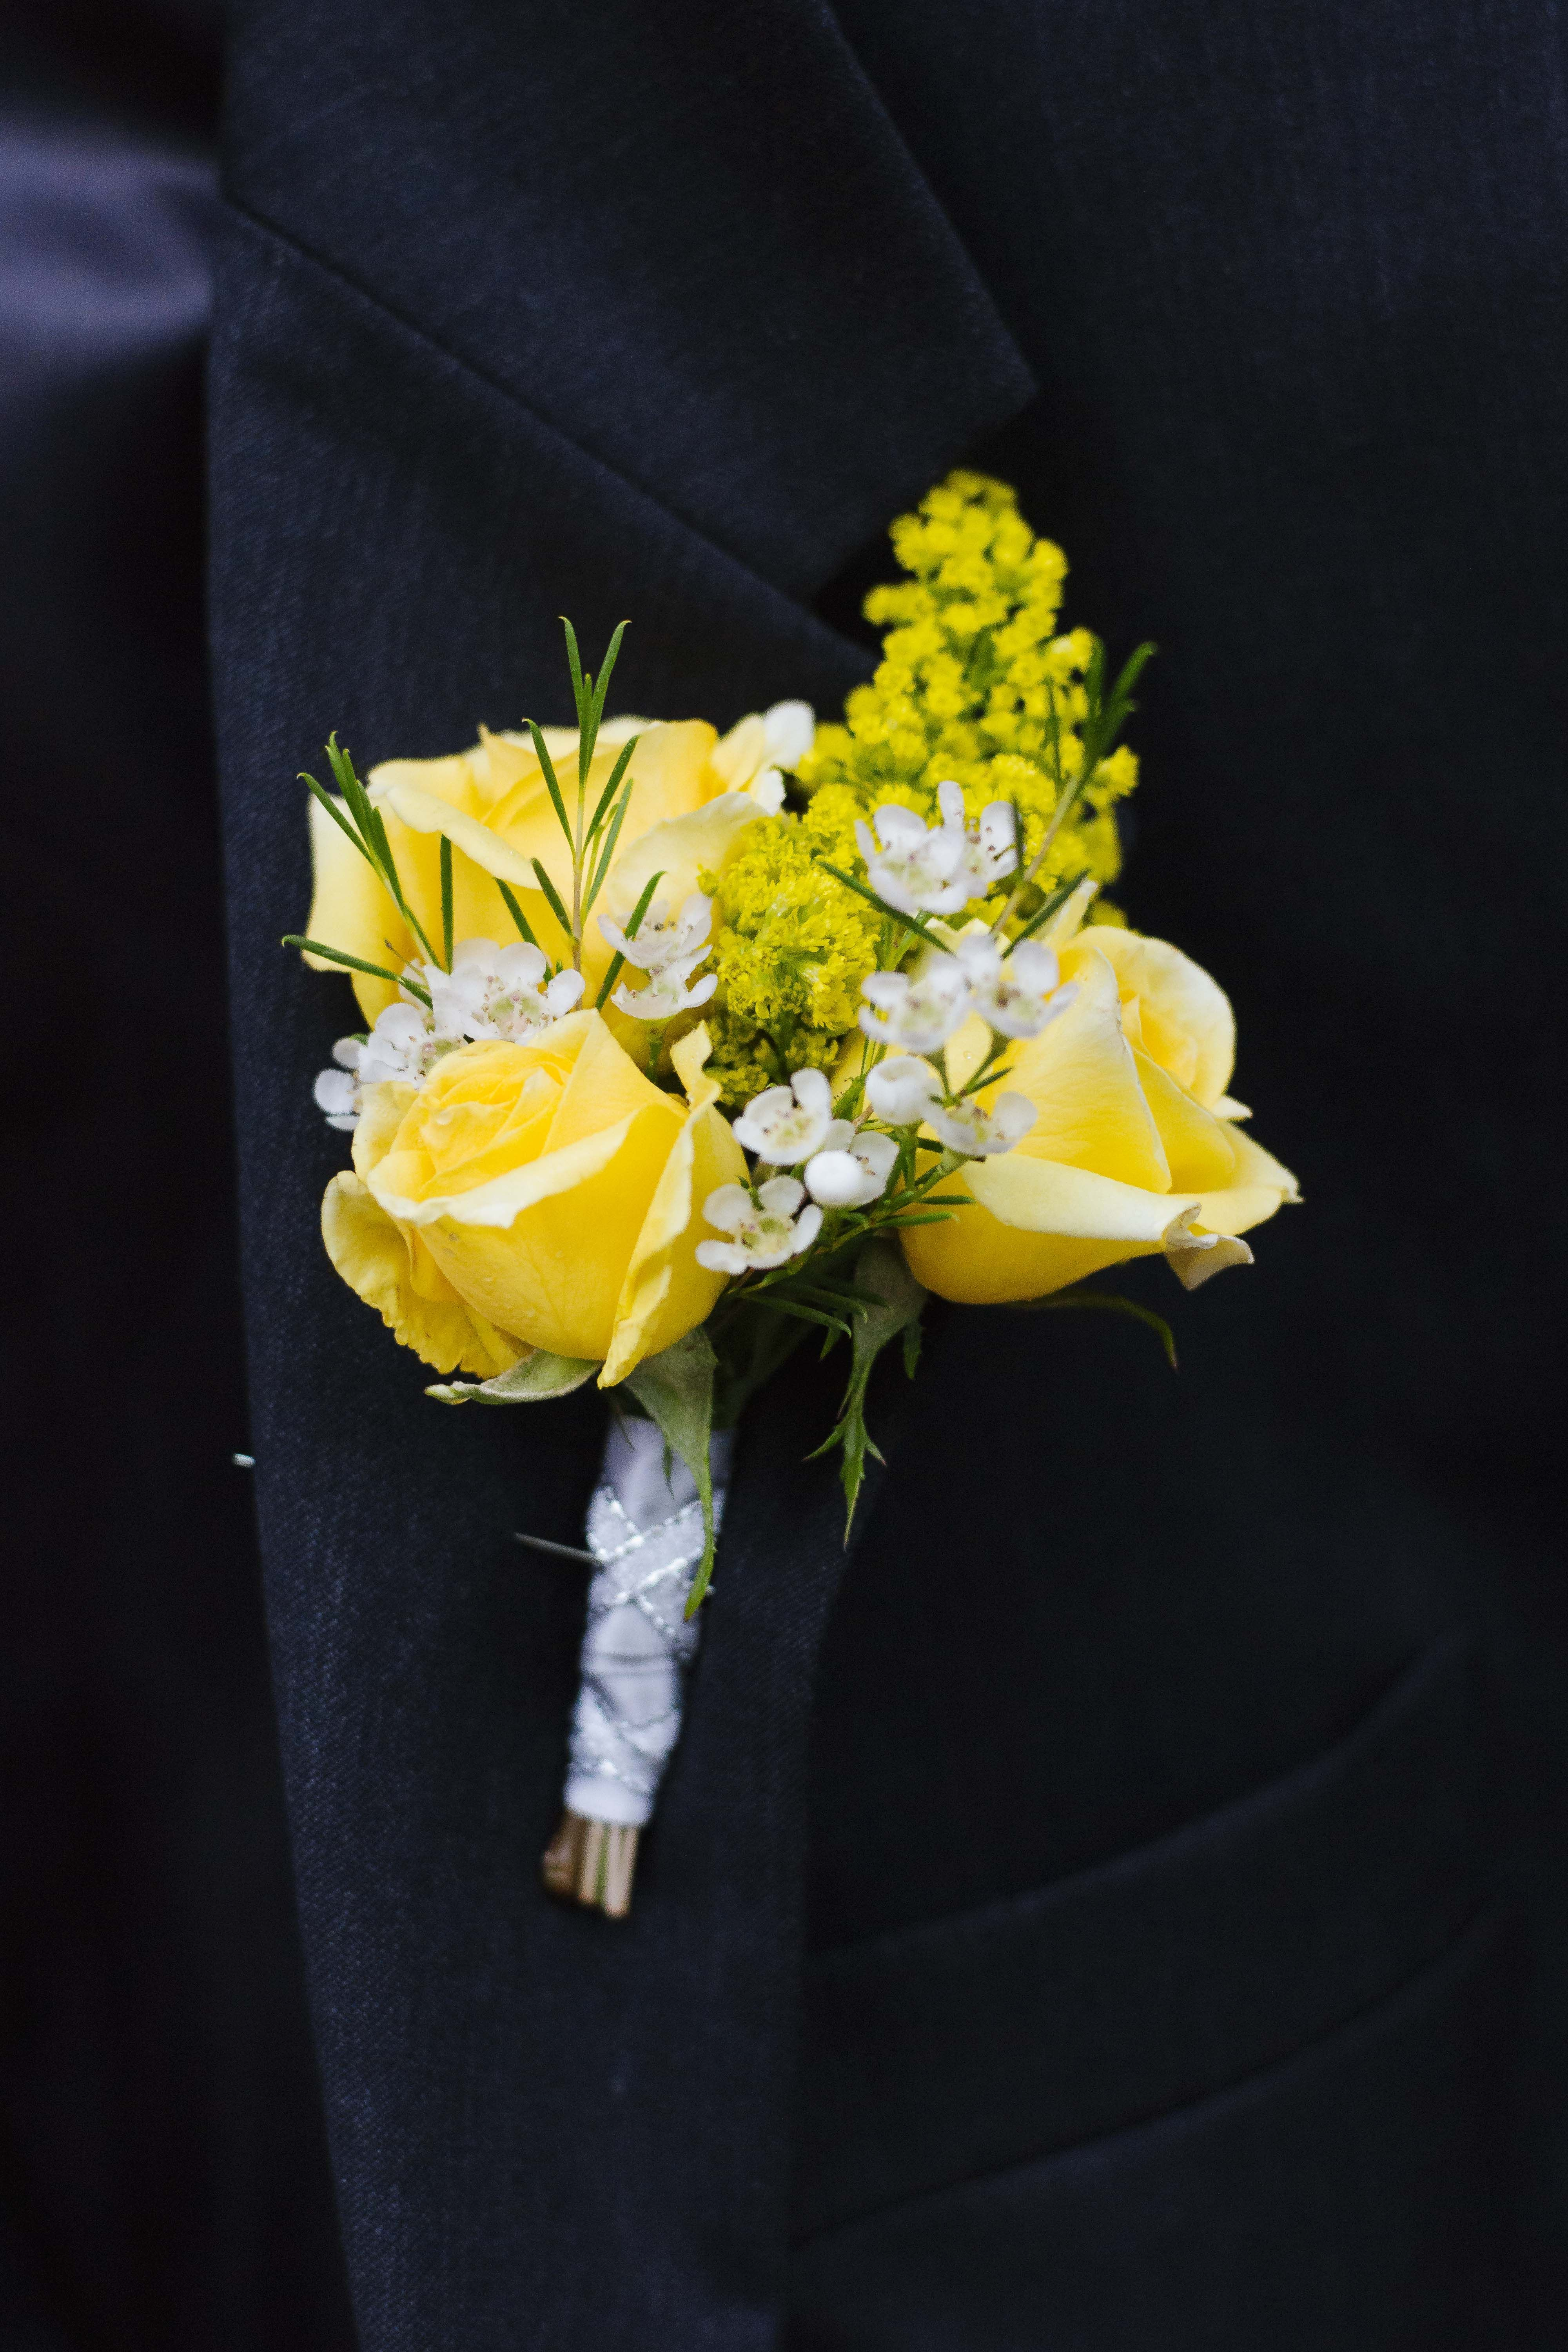 Pin By Emily Johanson On Flowers Pinterest Wax Flowers Corsage